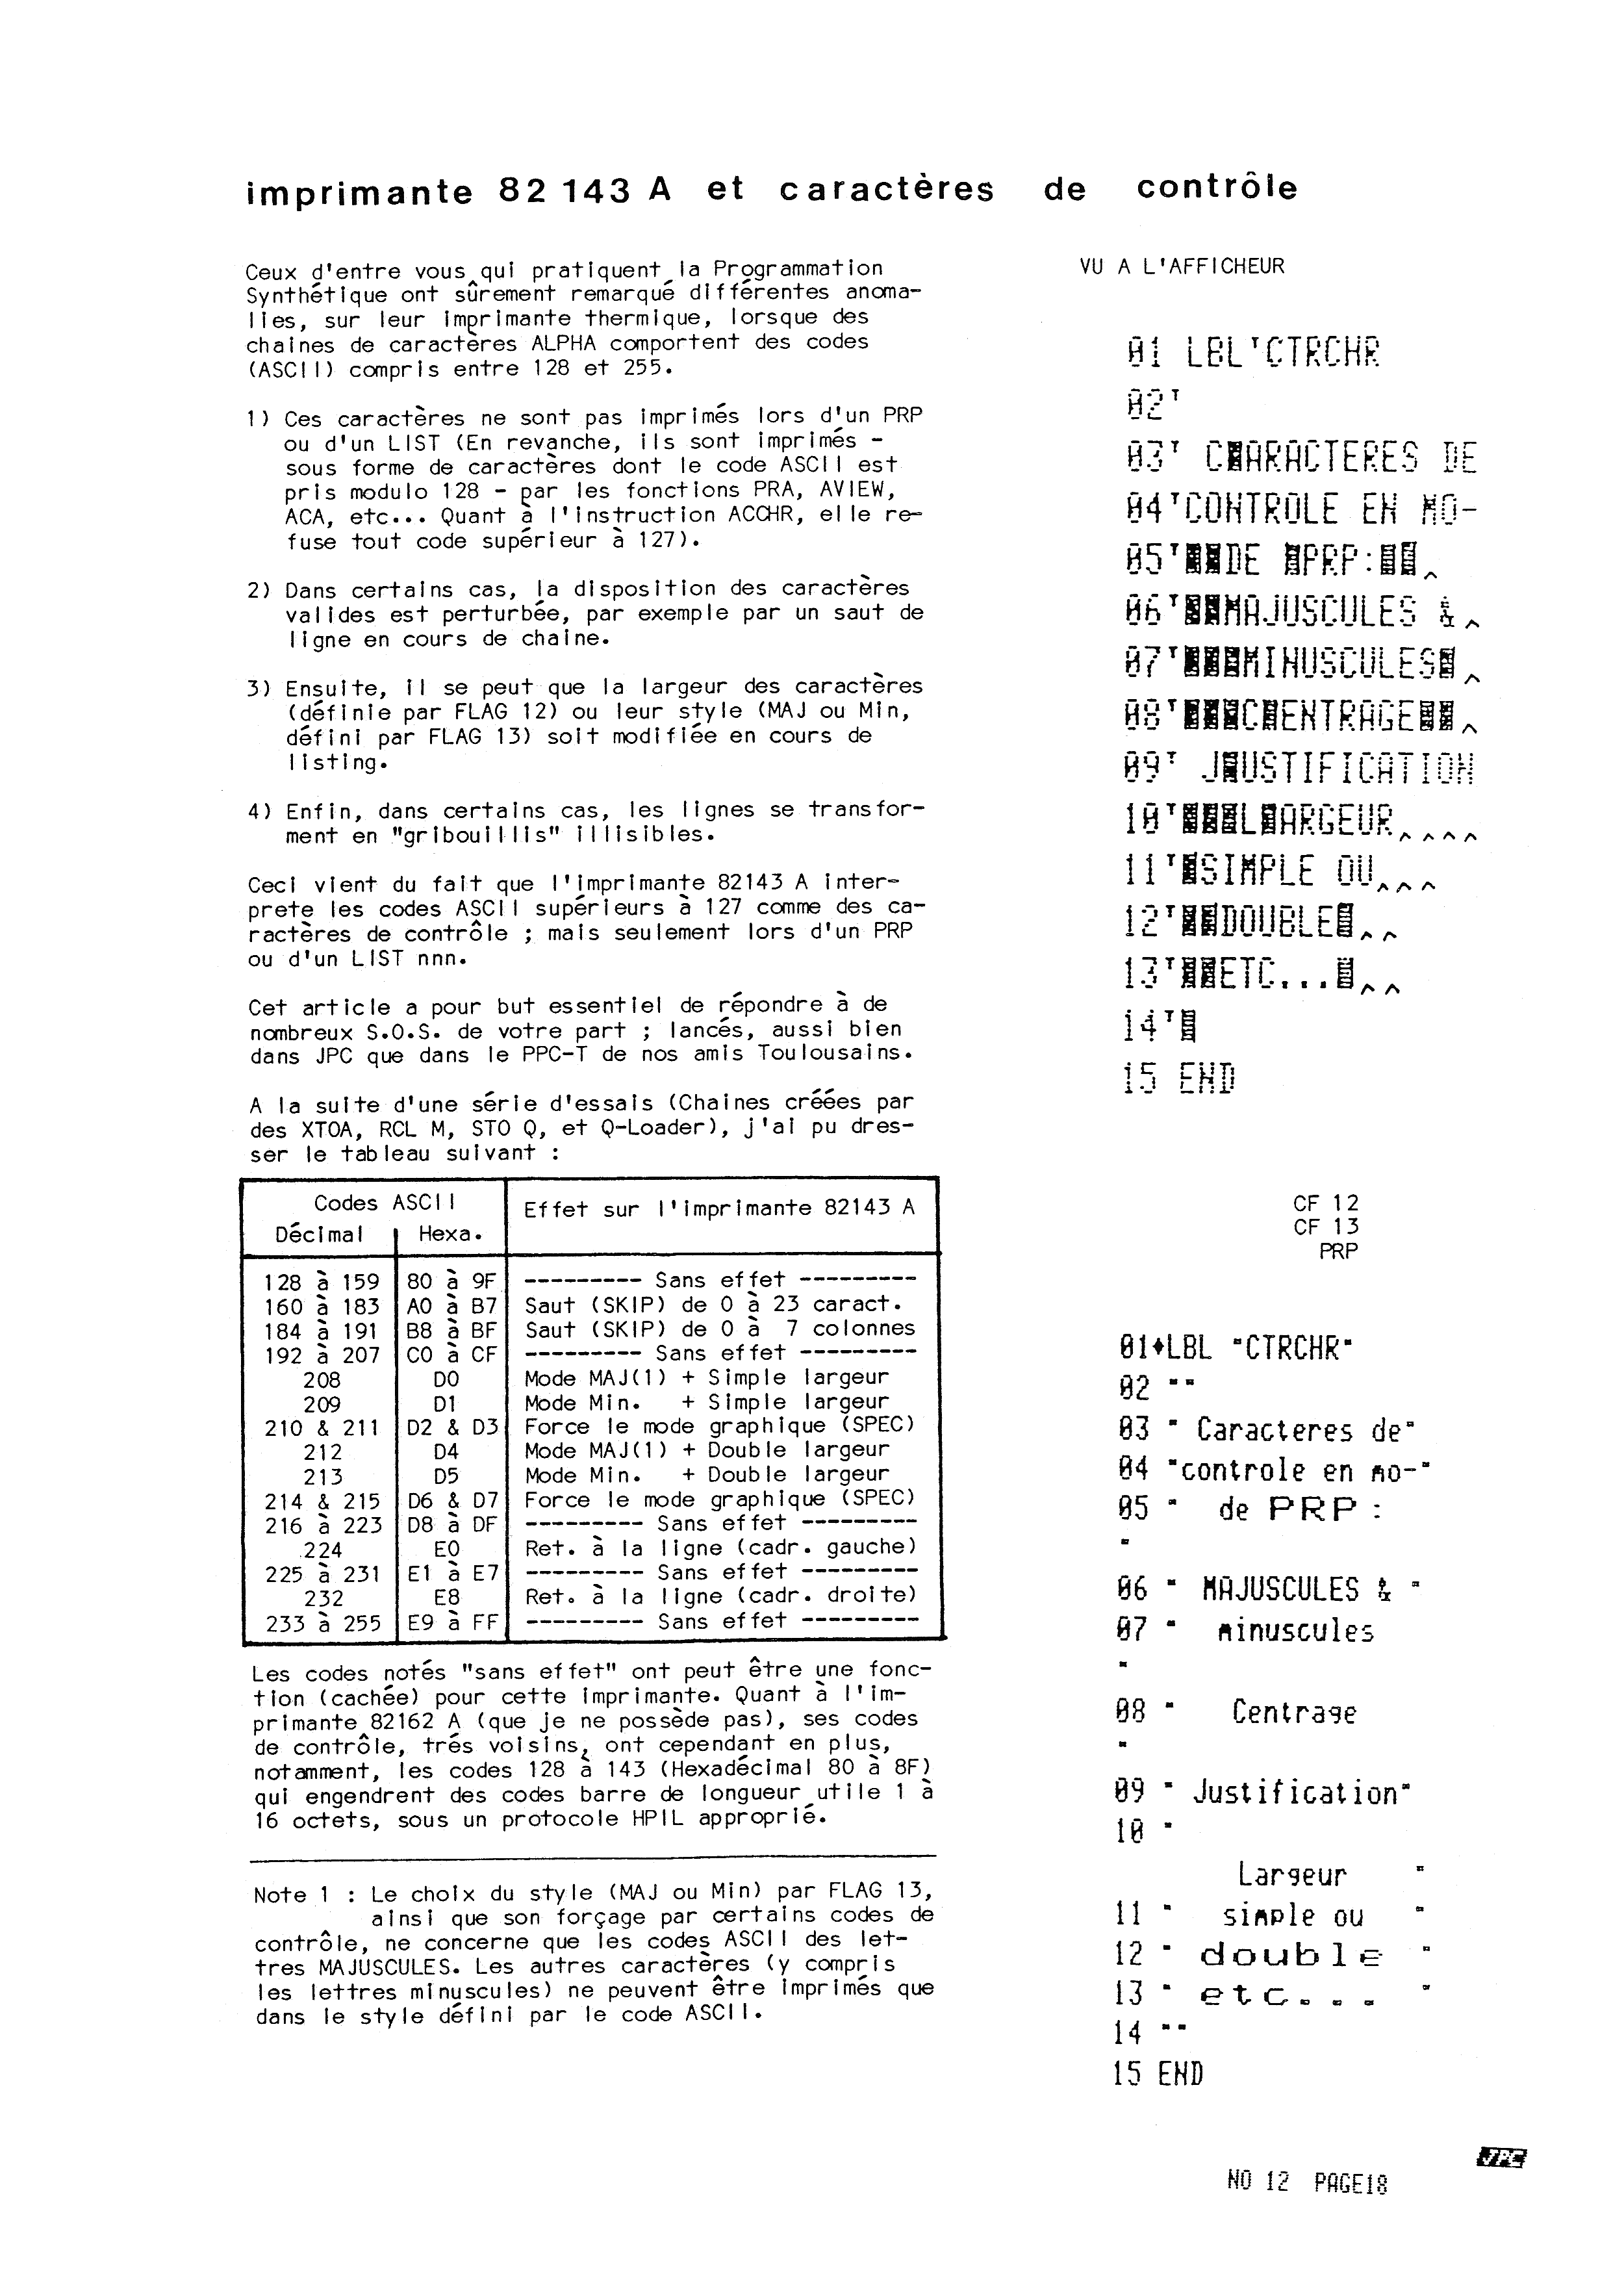 Jp-12-page-18-1000